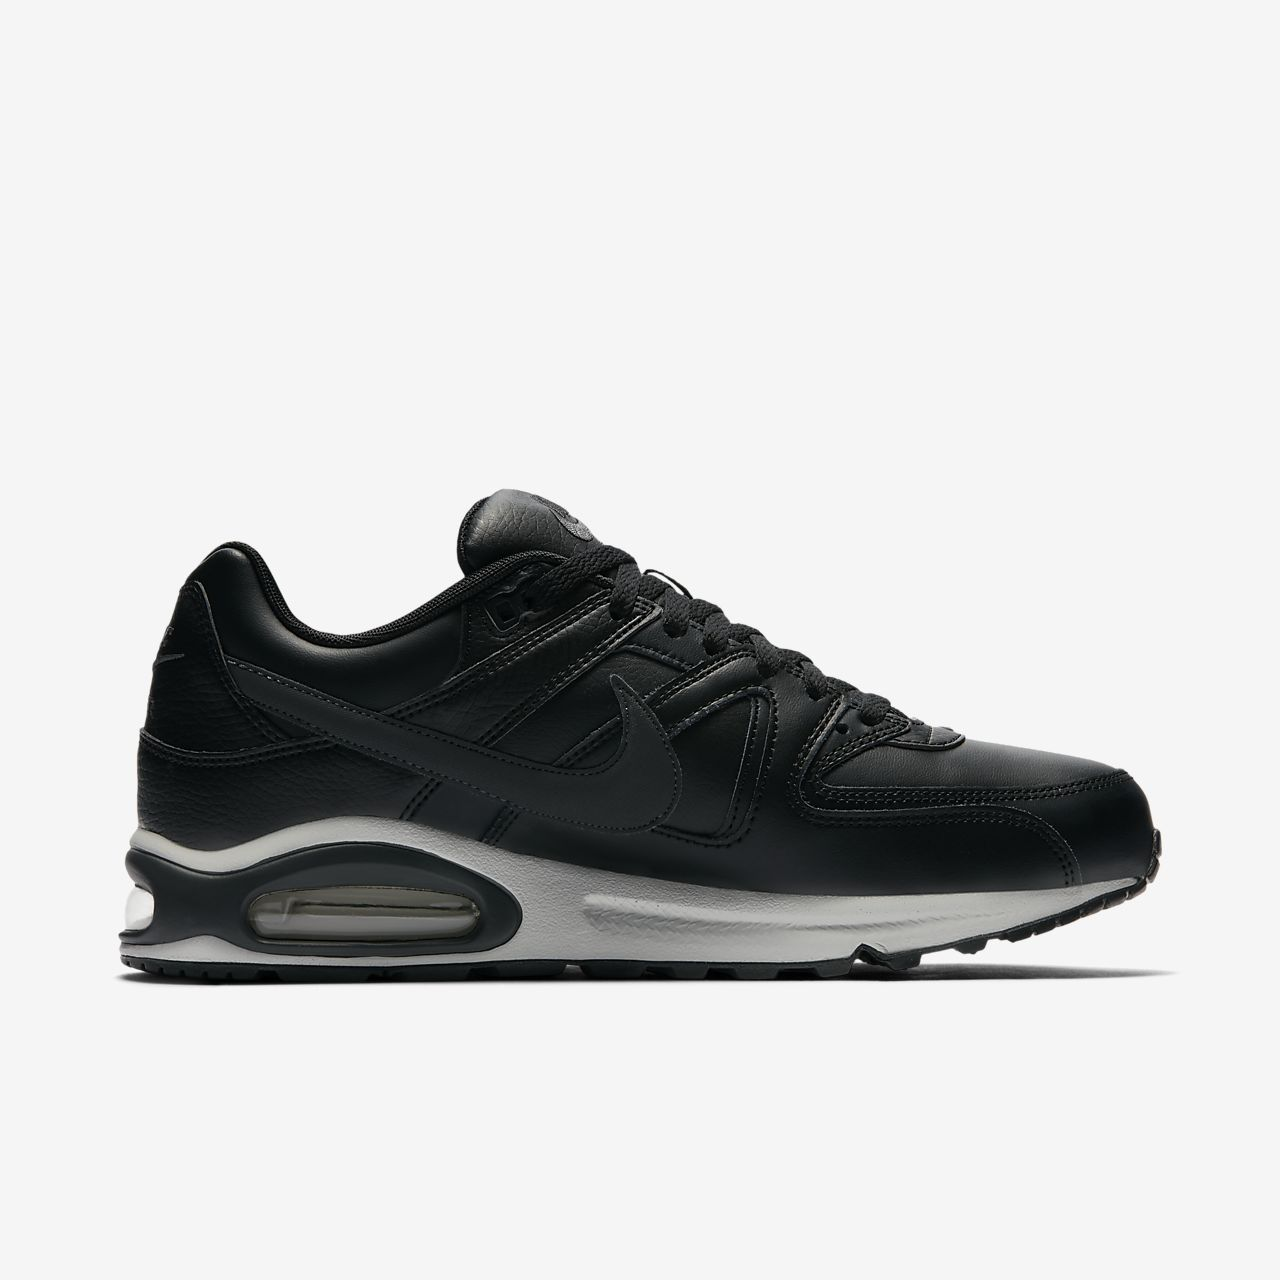 mieux aimé 34eb0 cdbf3 Nike Air Max Command Men's Shoe